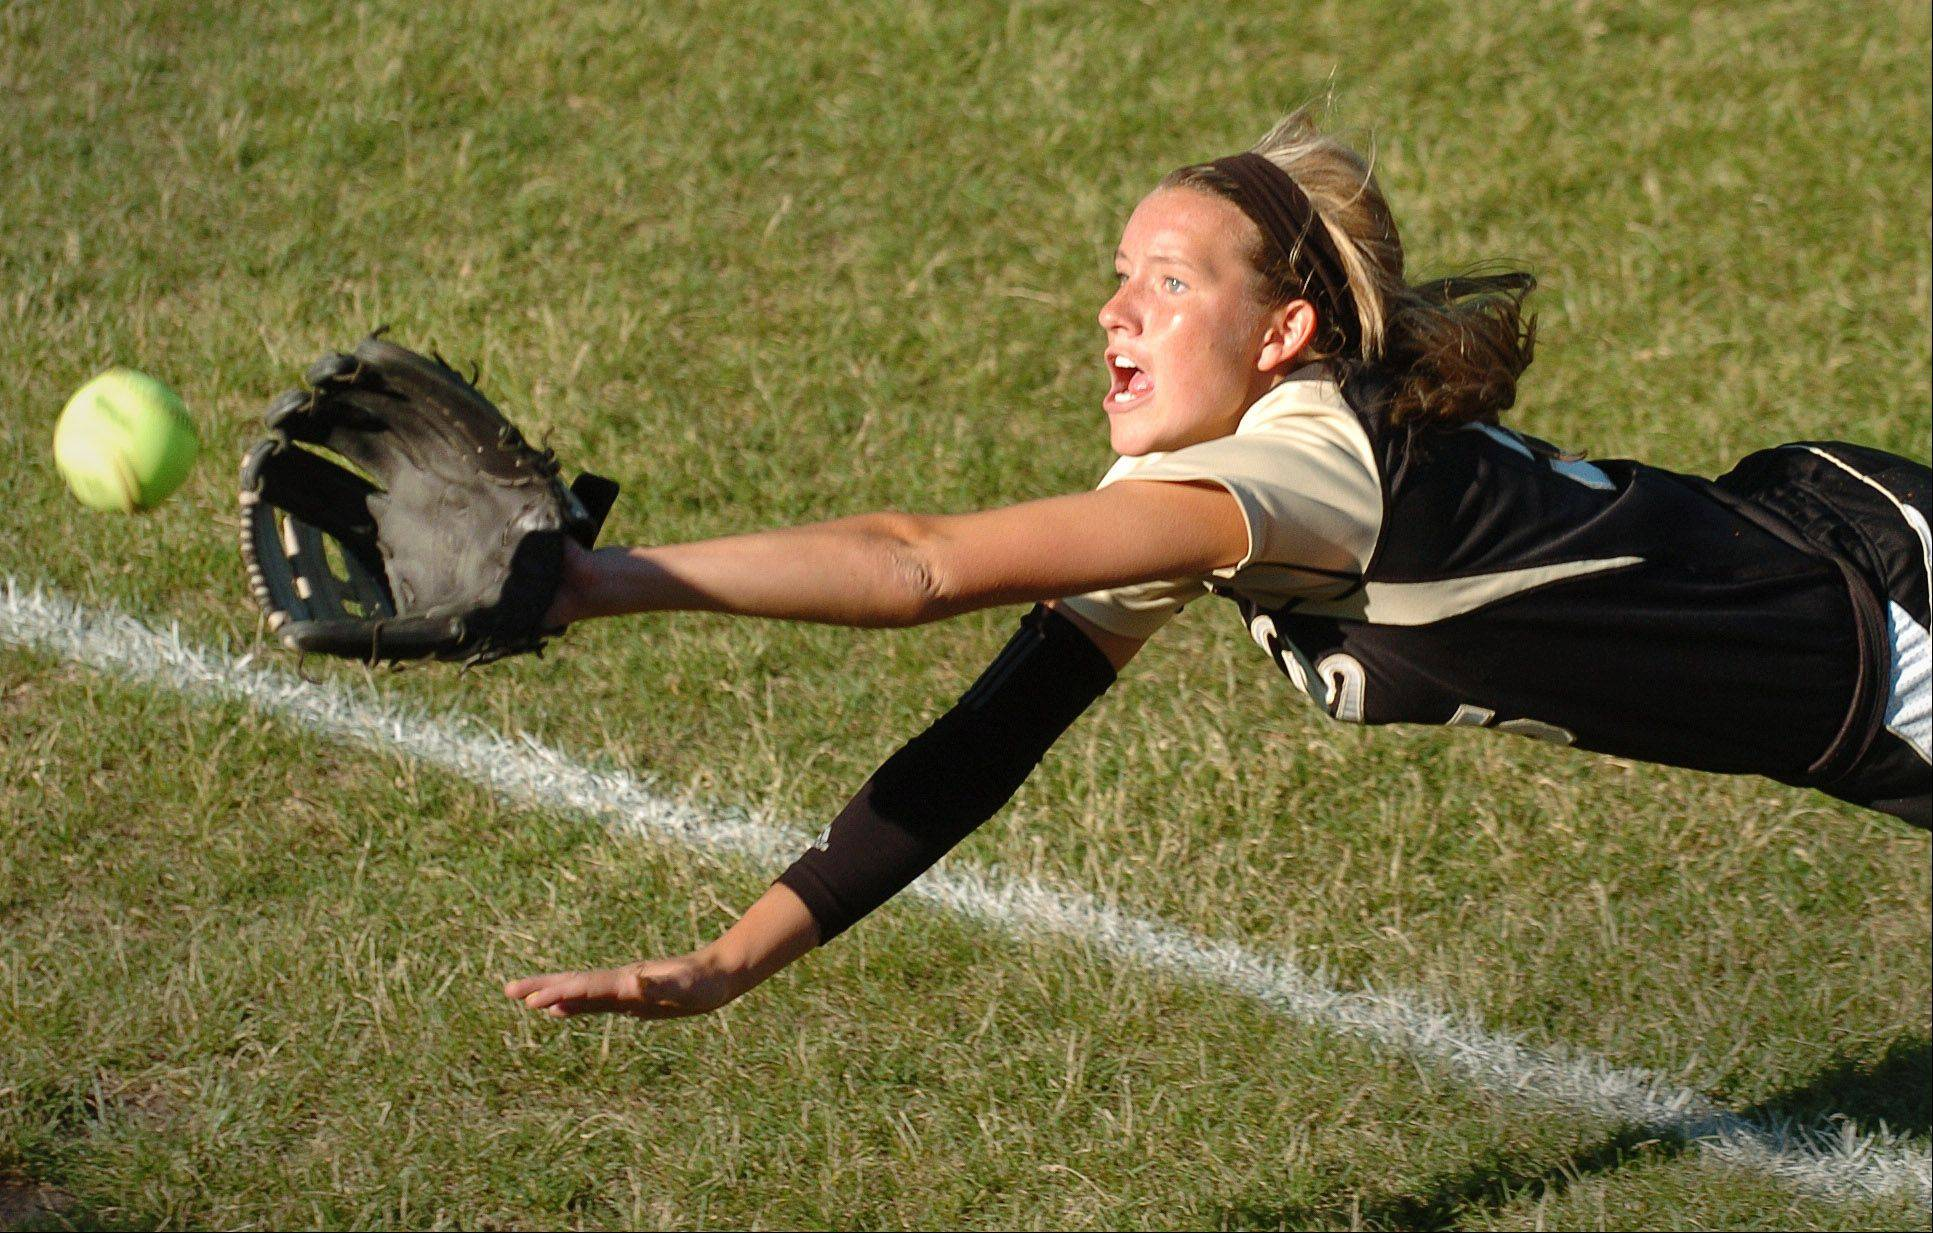 Jordyn Bowen of Grayslake North reaches for a foul ball at the Grayslake North vs. Marengo girls softball game as part of the state tournament in DeKalb.